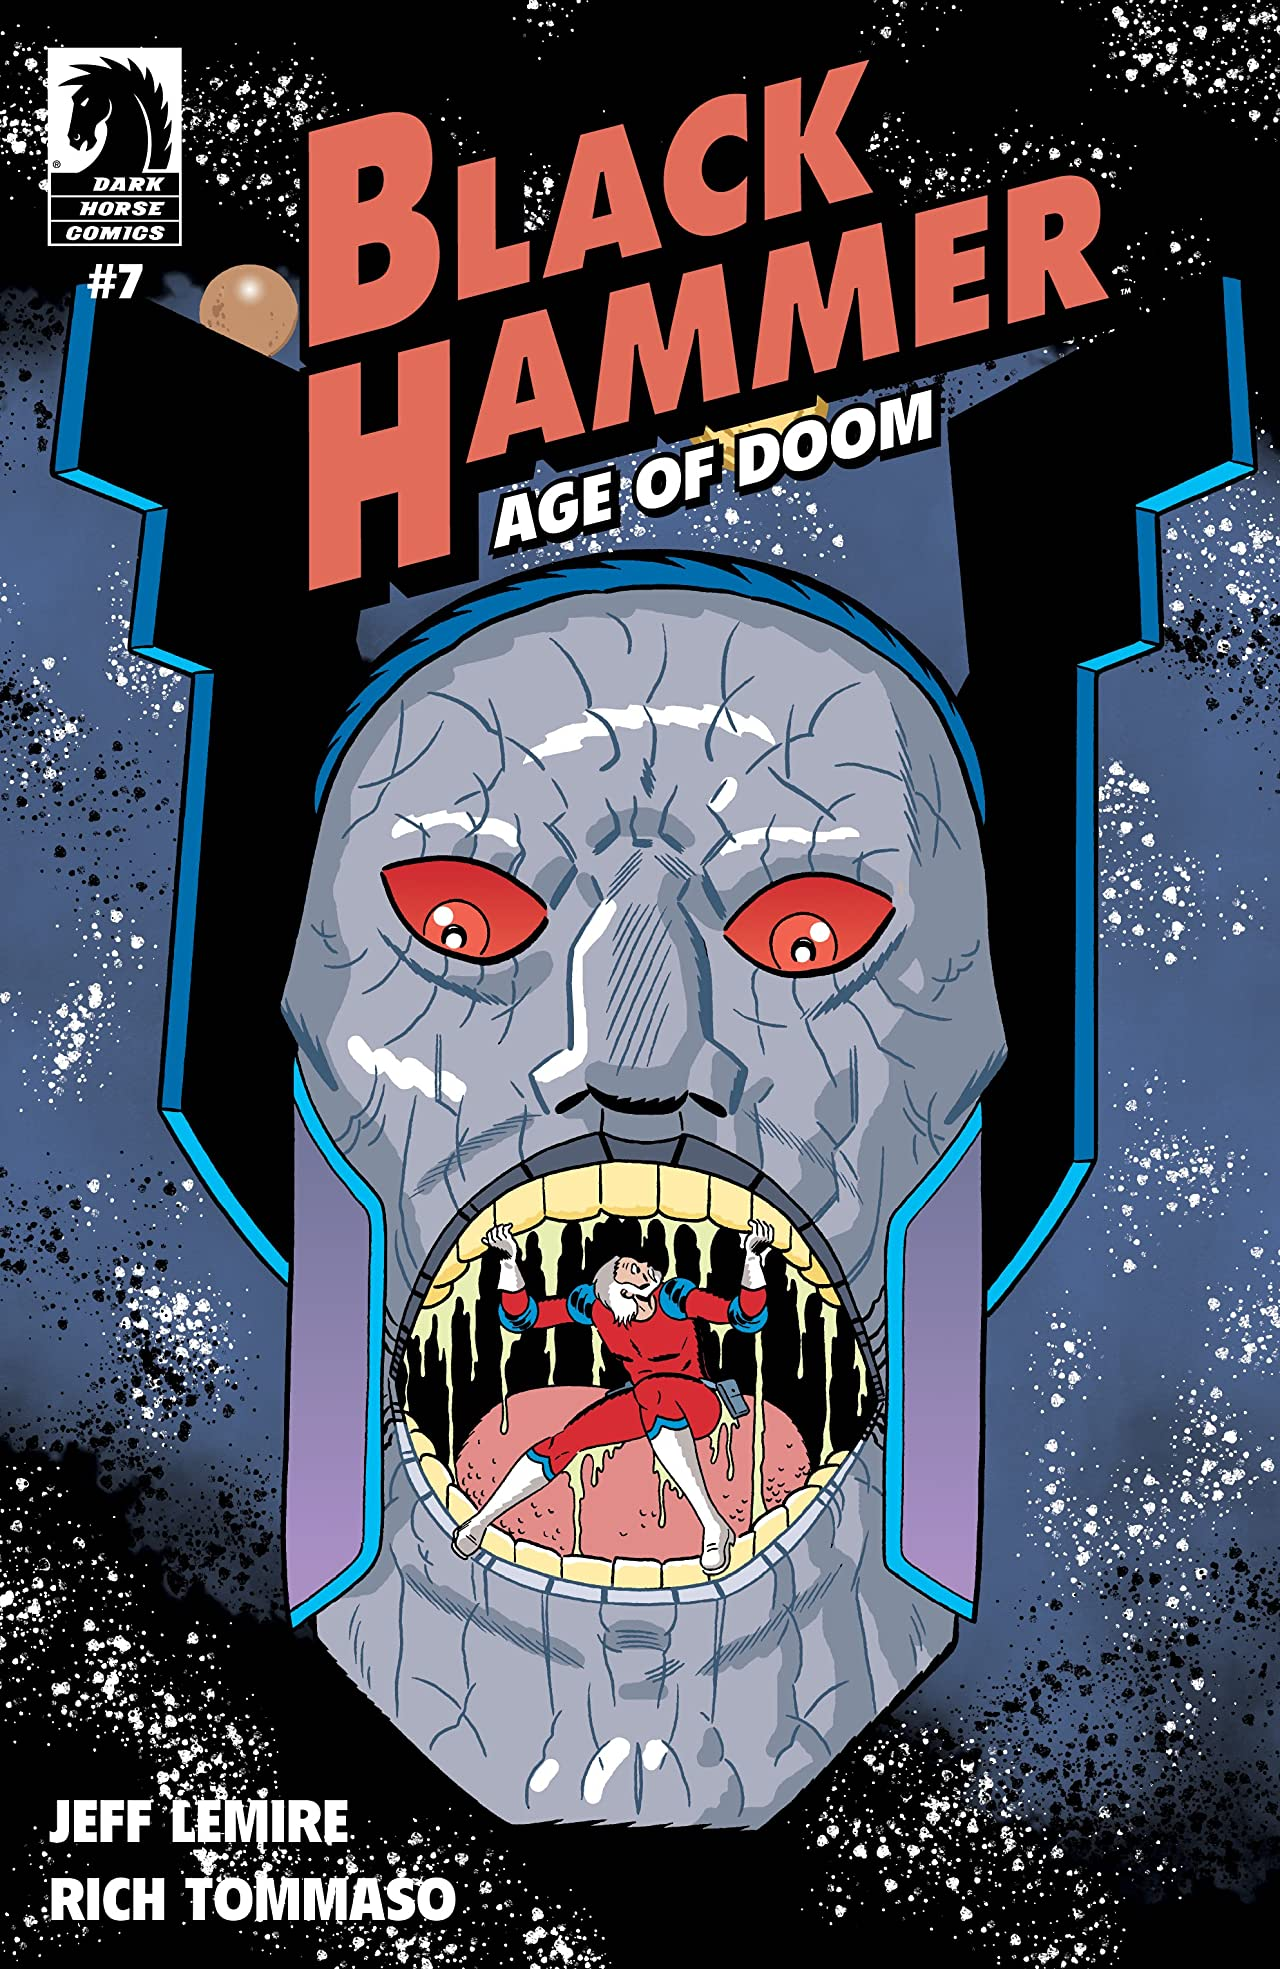 Black Hammer: Age of Doom No.7